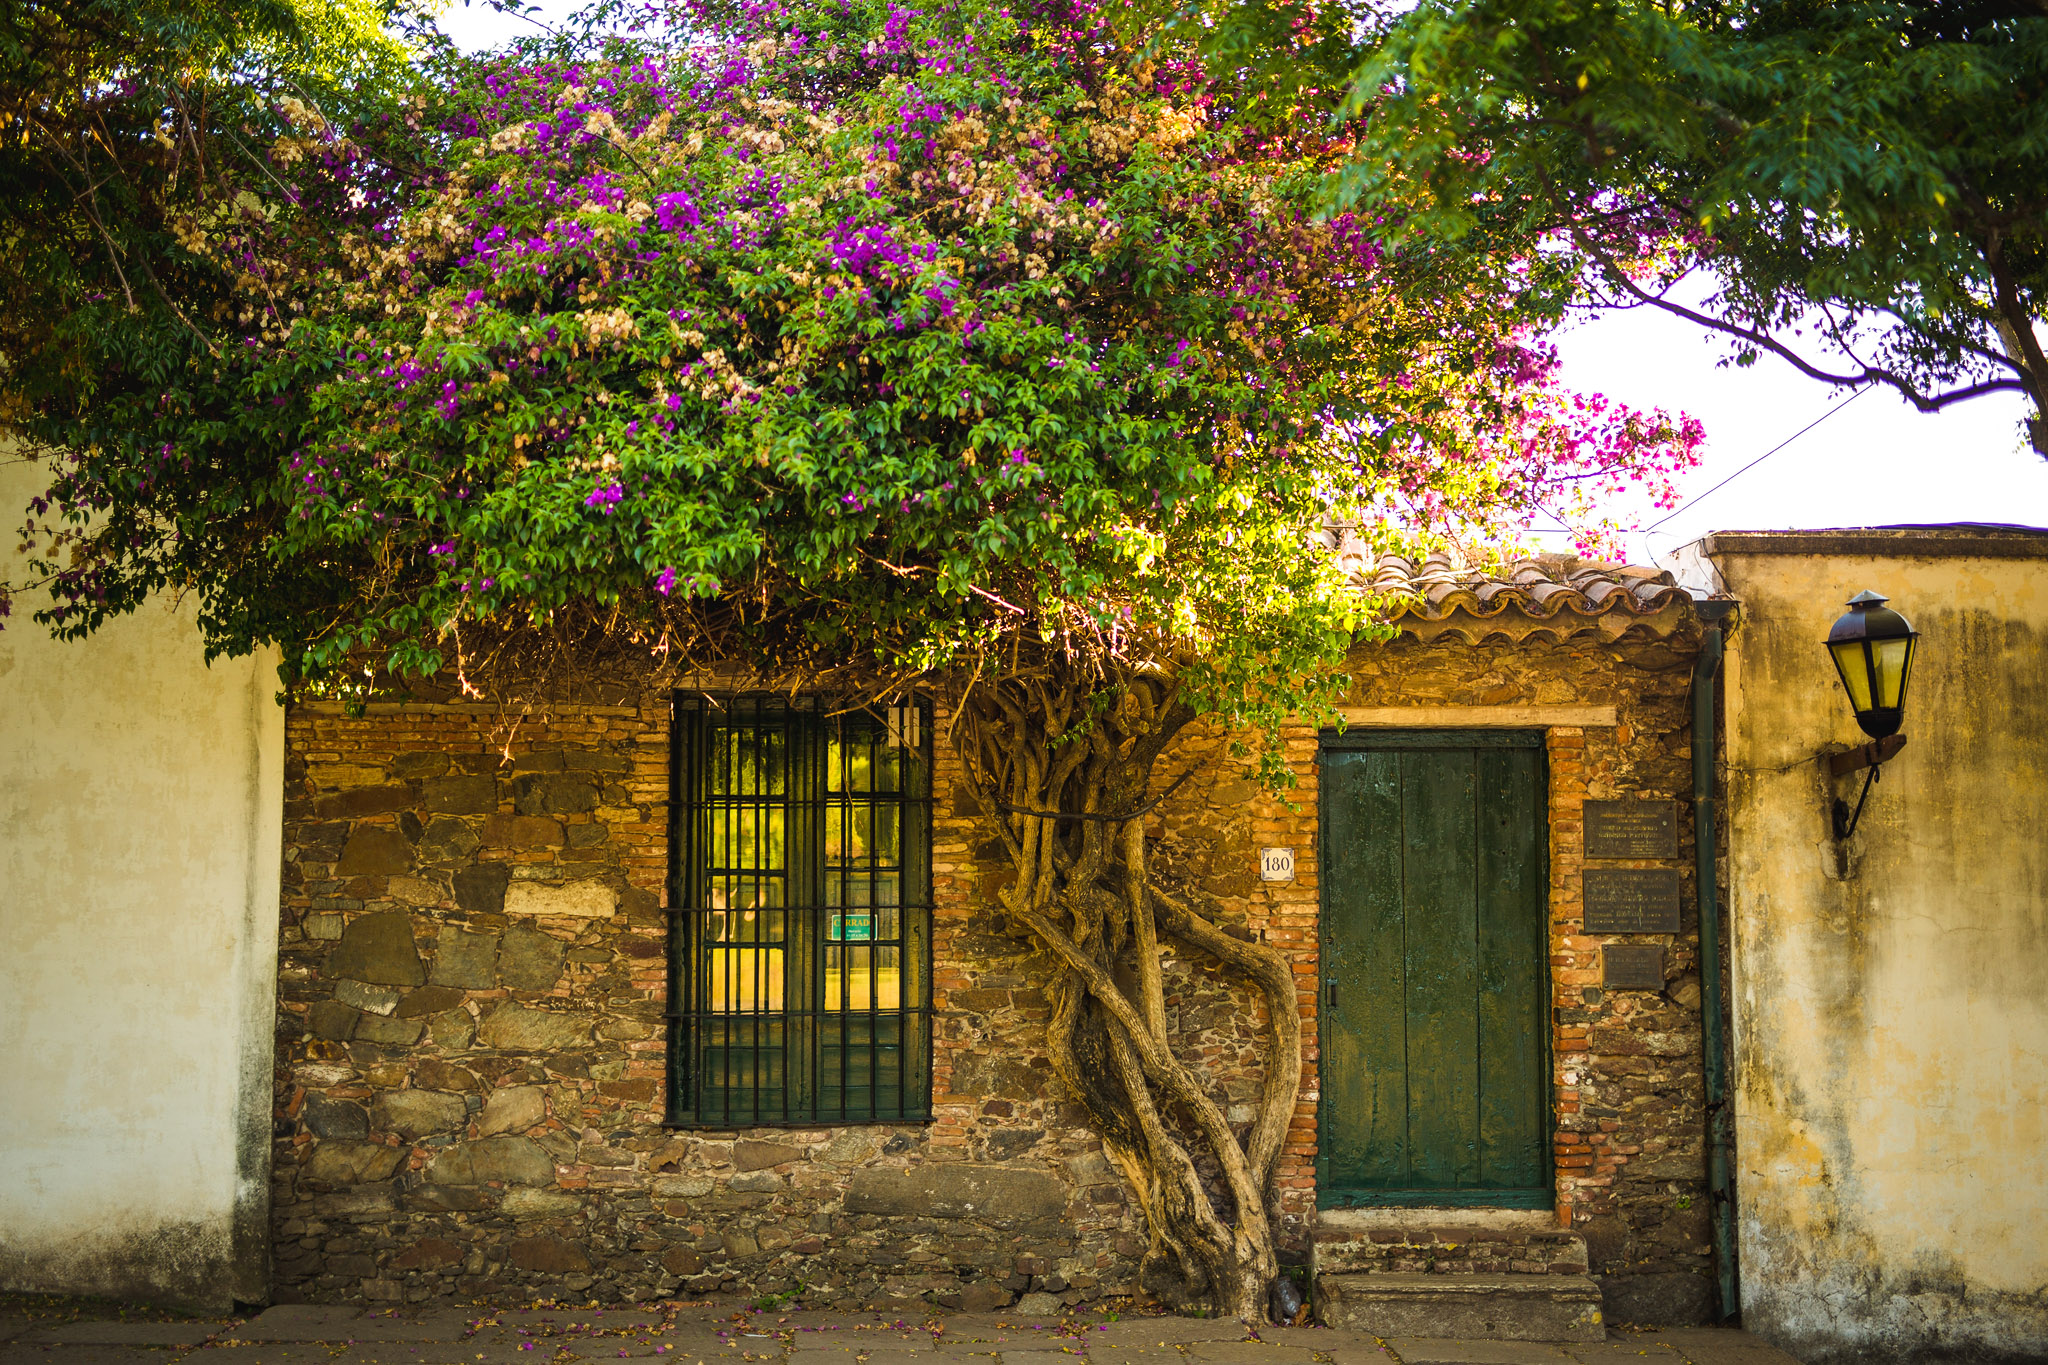 wedding-travellers-destination-photography-overlanding-south-america-uruguay-colonia-del-sacramento-picturesque-house-flowers-tree-stone